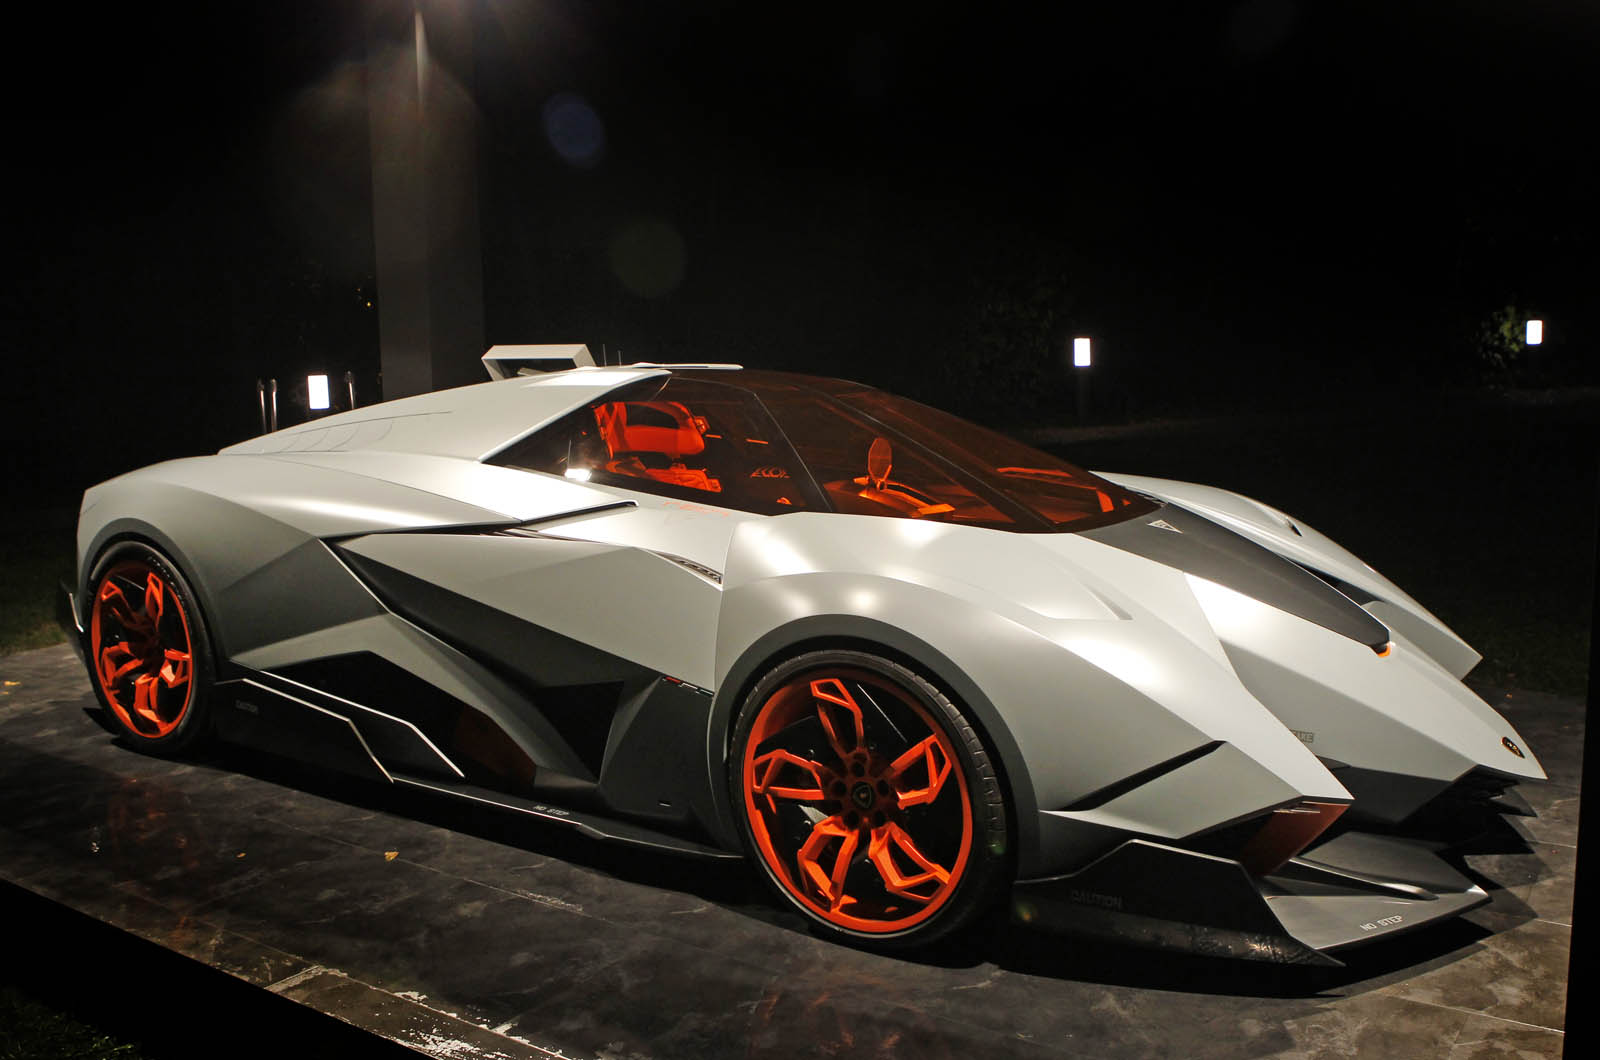 lamborghini lamborghini egoista - Lamborghini Egoista Gold